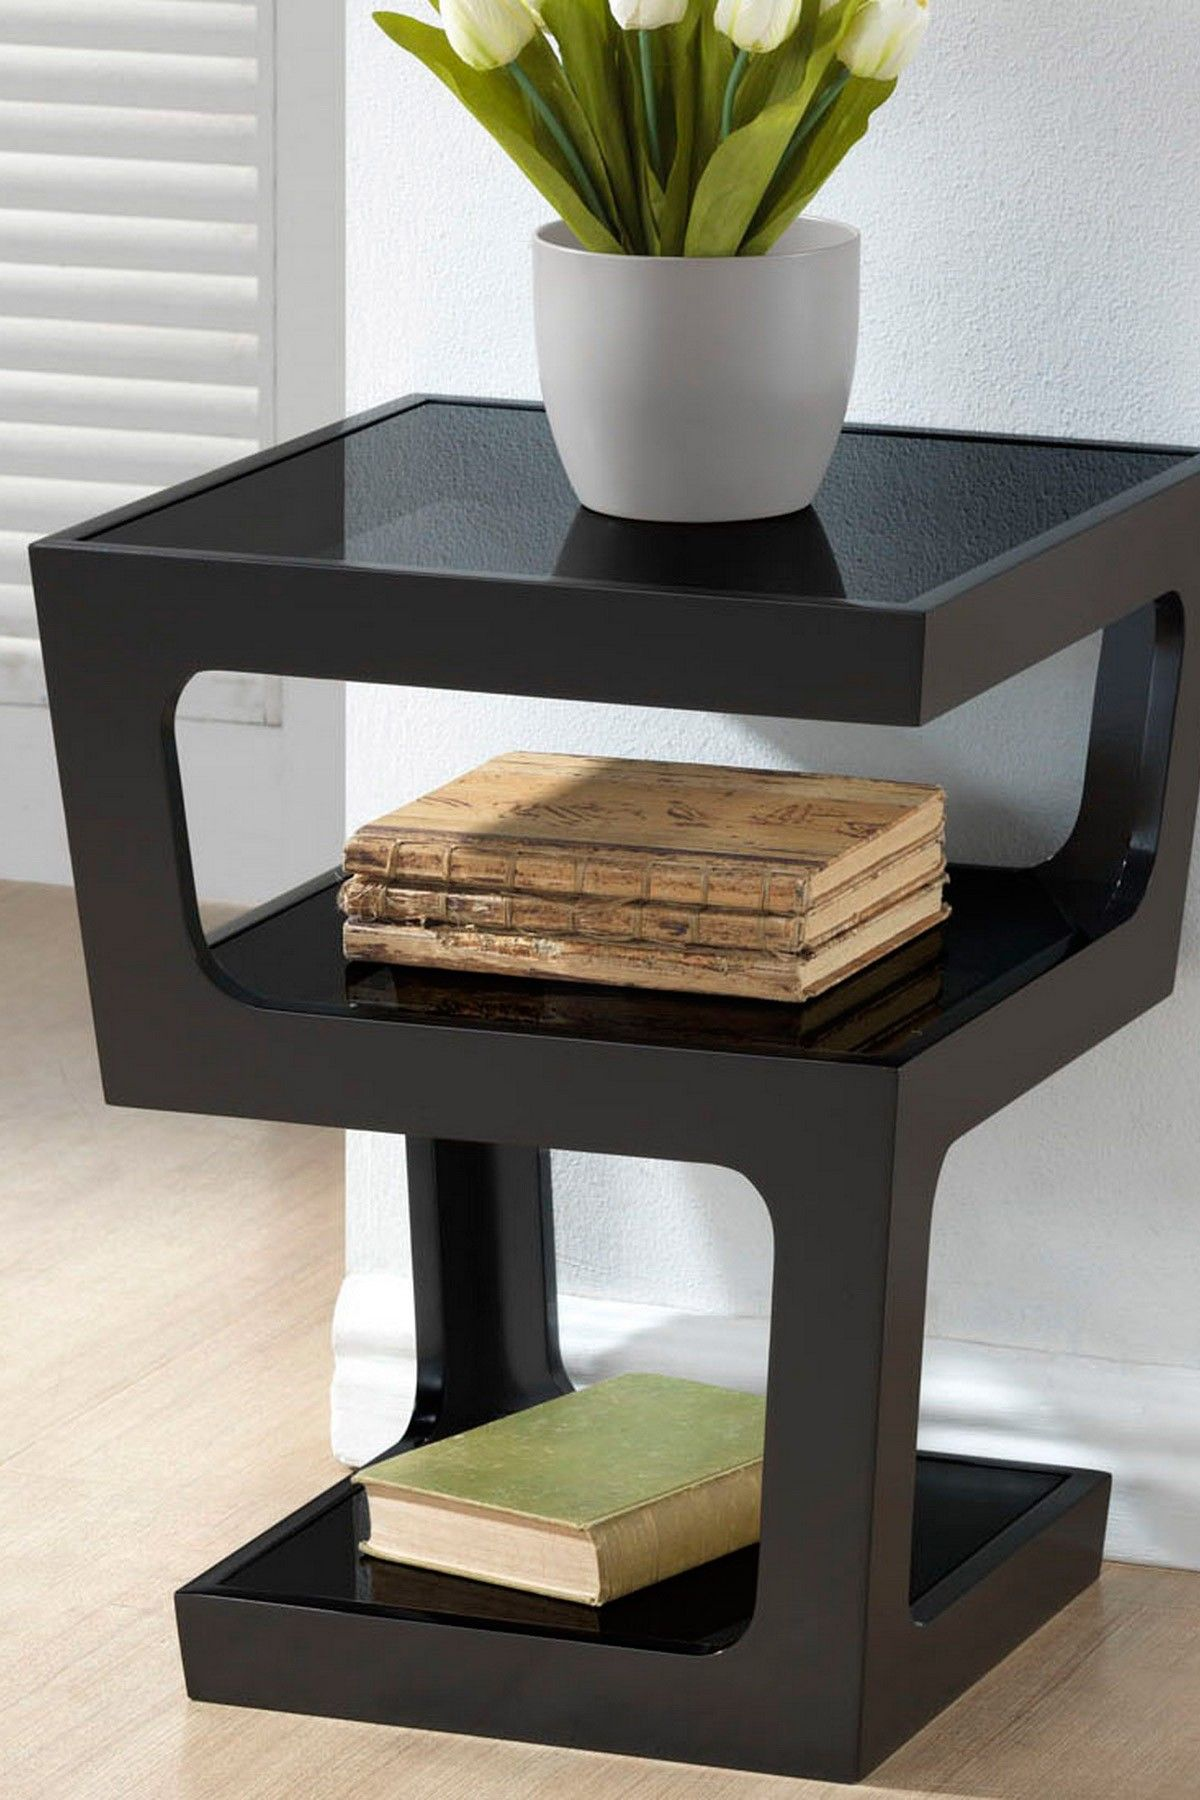 Wholesale Interiors Clara Black Modern End Table With 3 Tiered Glass Shelves Hautelook Modern End Tables Glass Top End Tables Contemporary End Tables